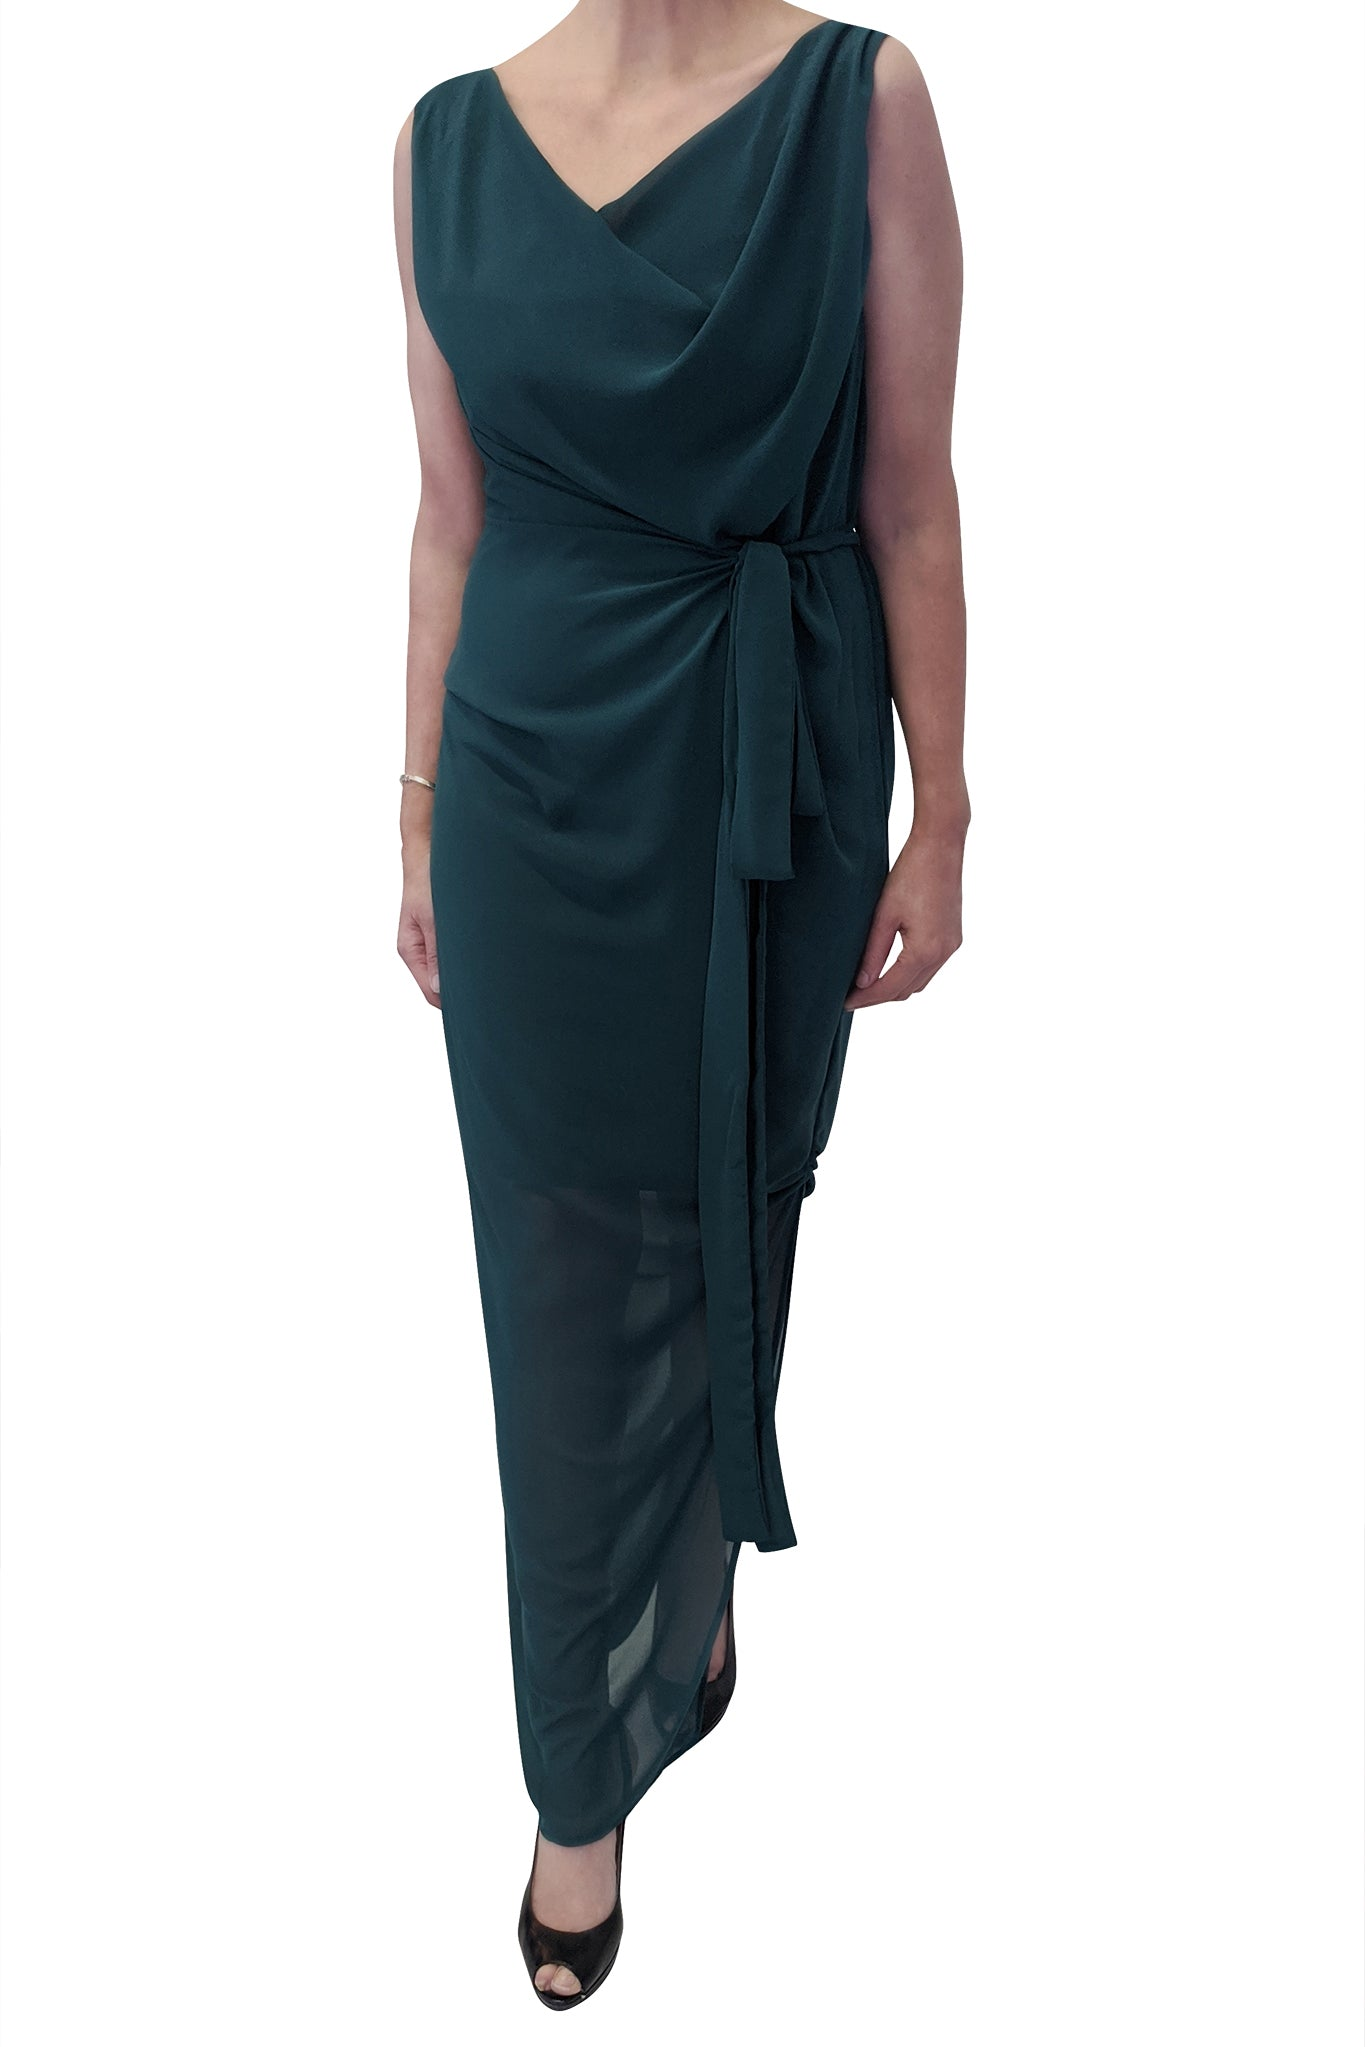 Evoke Maxi, Sea Green